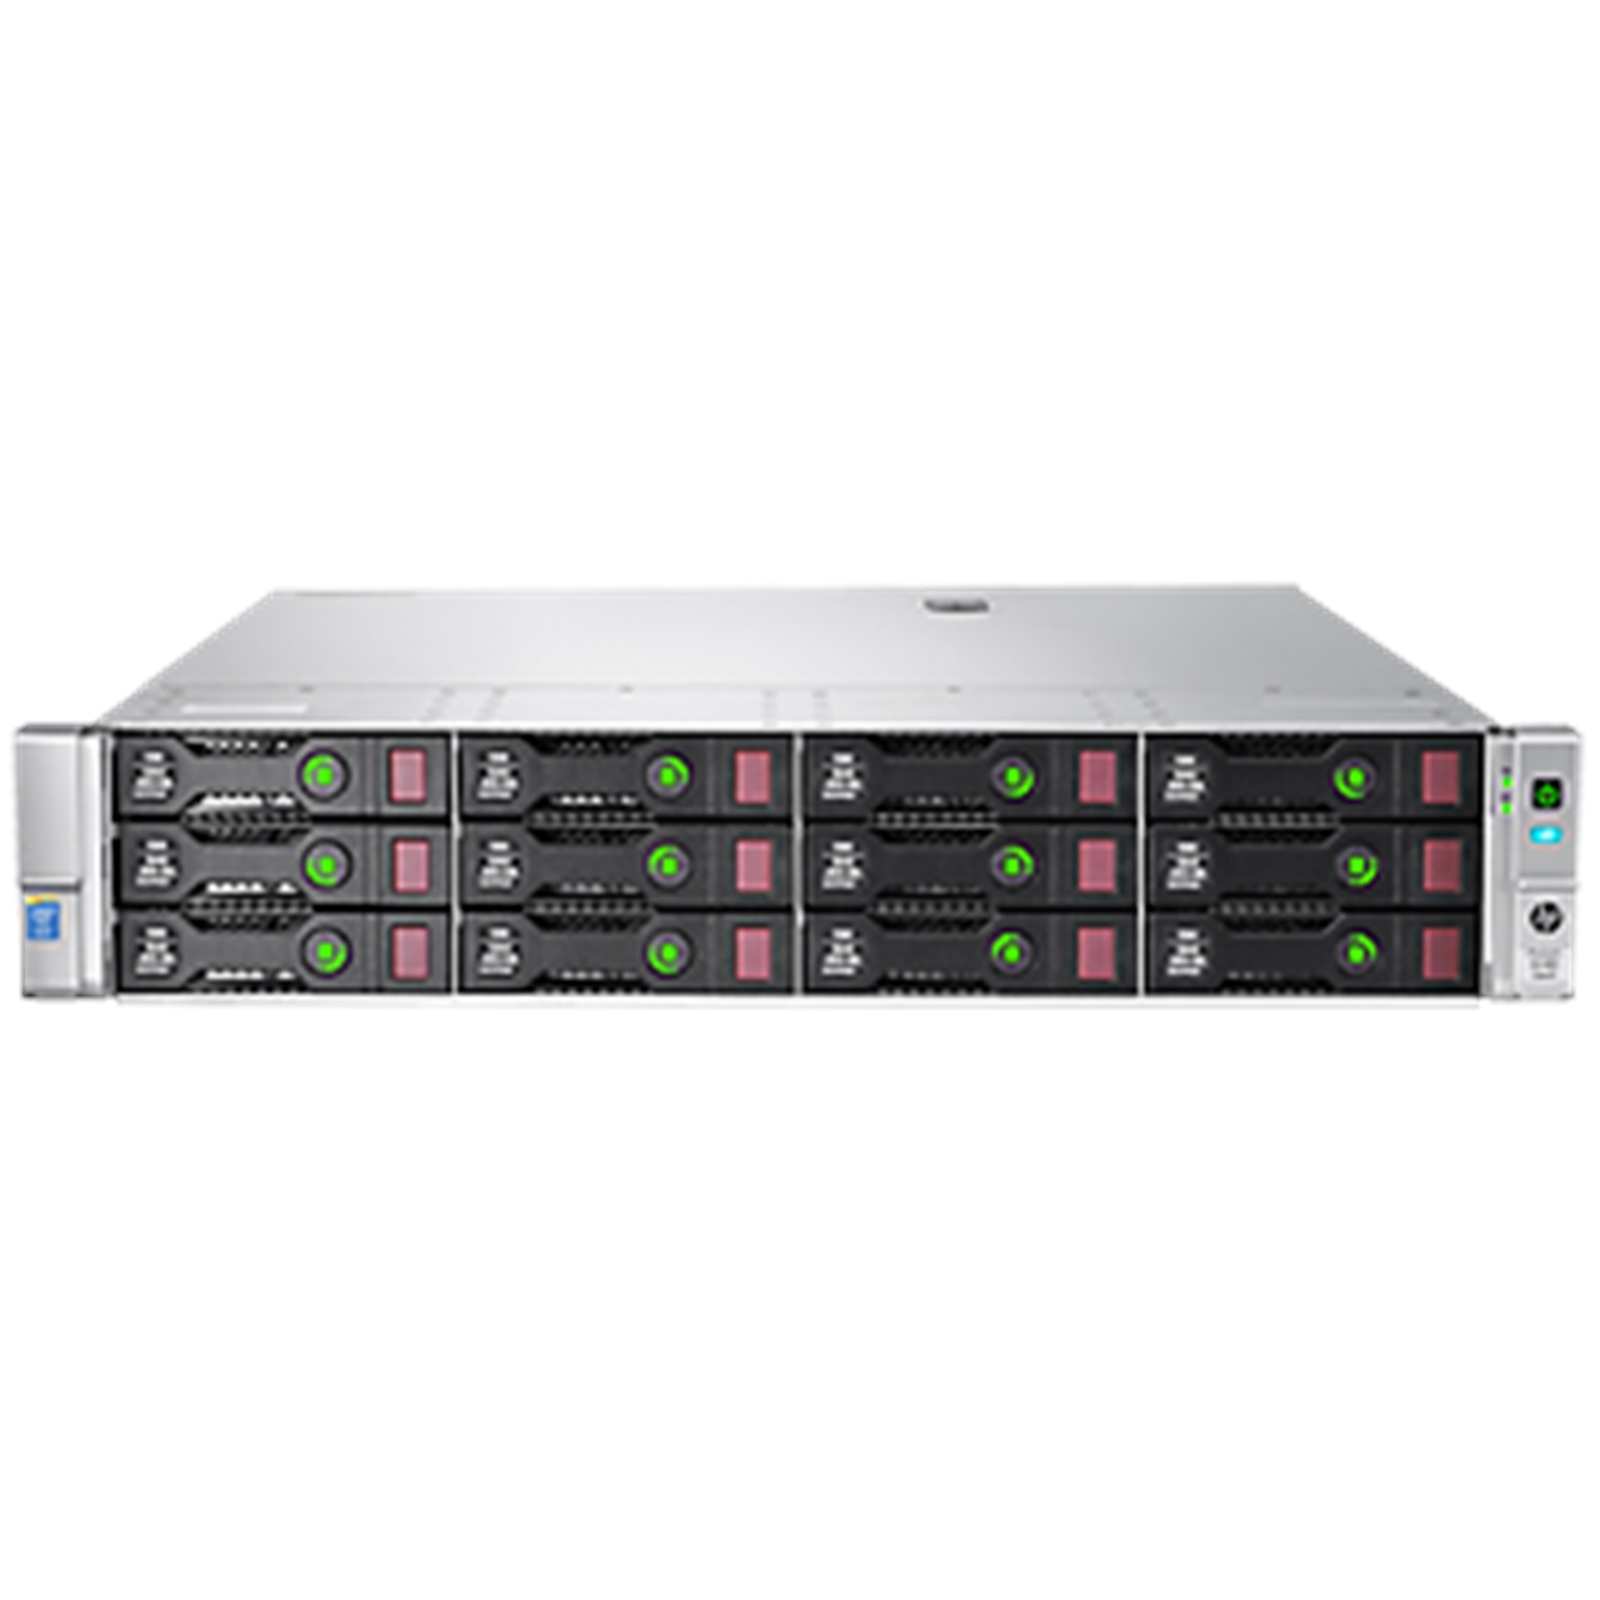 HPE Rack Servers - Hewlett Packard 860806-425 | Servers Plus